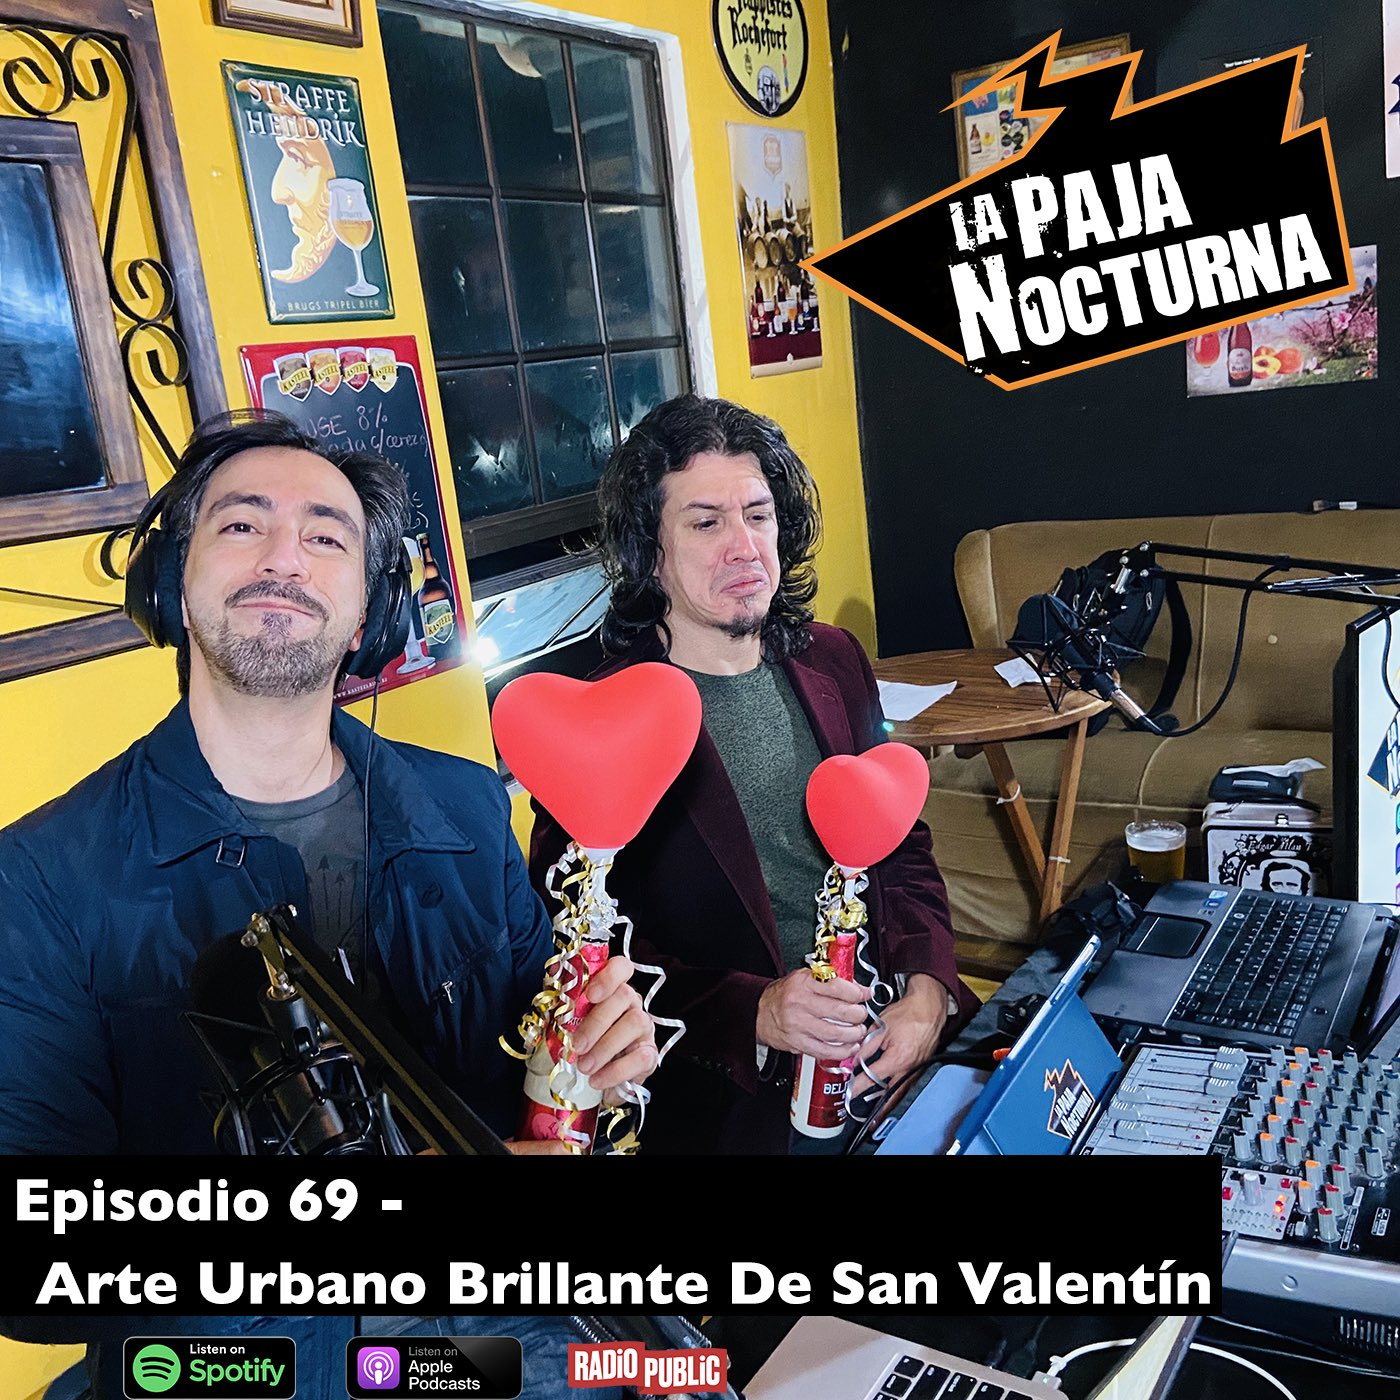 La paja nocturna podcast Episodio 69